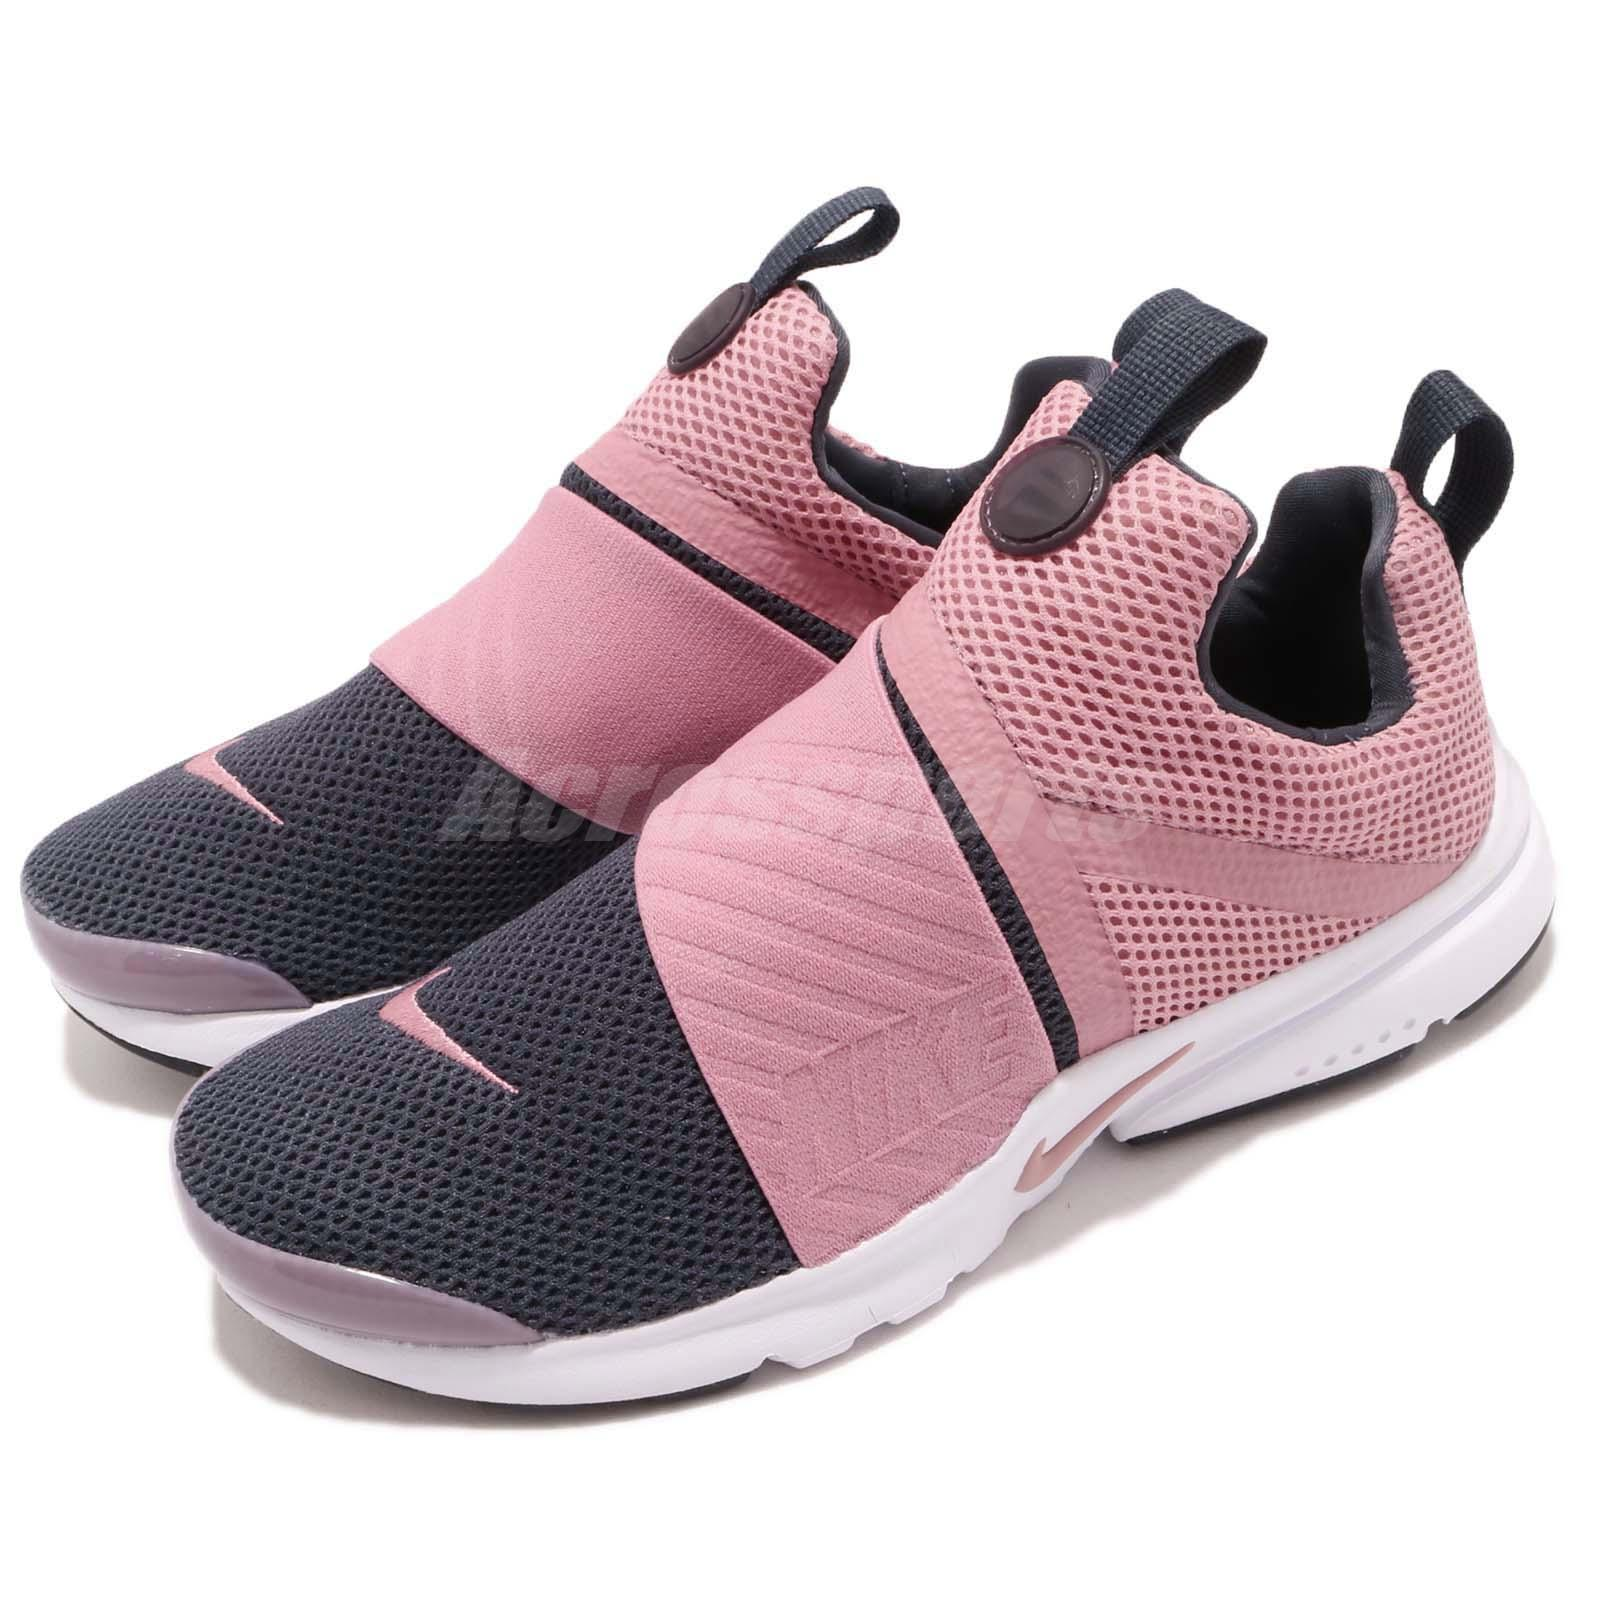 save off ffbb9 f5564 Details about Nike Presto Extreme GS Elemental Pink Womens Running Shoes  Lifestyle 870022-603